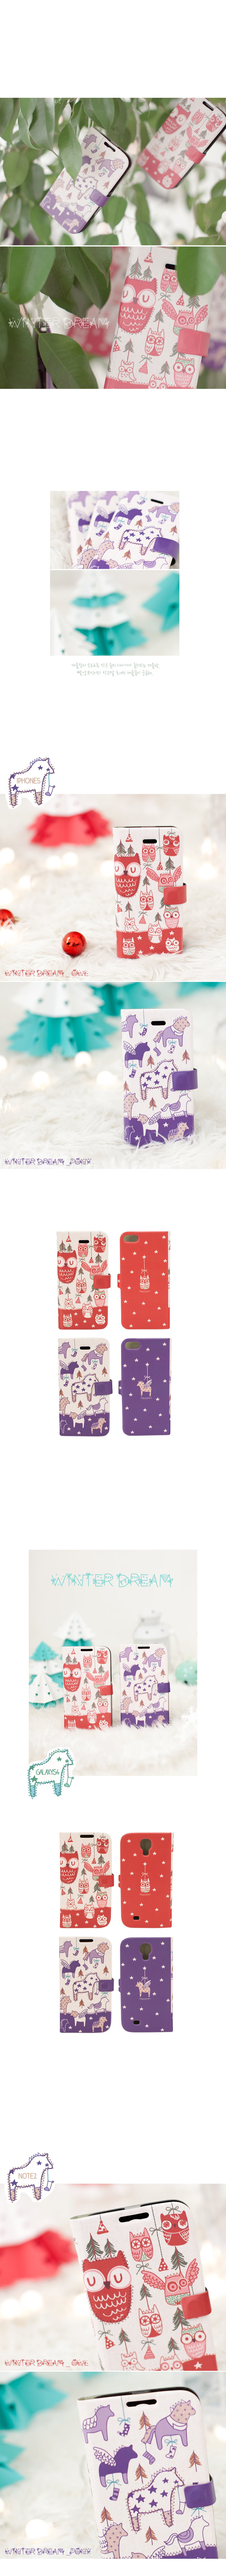 [HAPPYMORI] Flip Cover Case _ Winter Dream(iPhone6Plus,iPhone6Plus_s,Galaxy S6Edge,Galaxy S6,Galaxy Note4)